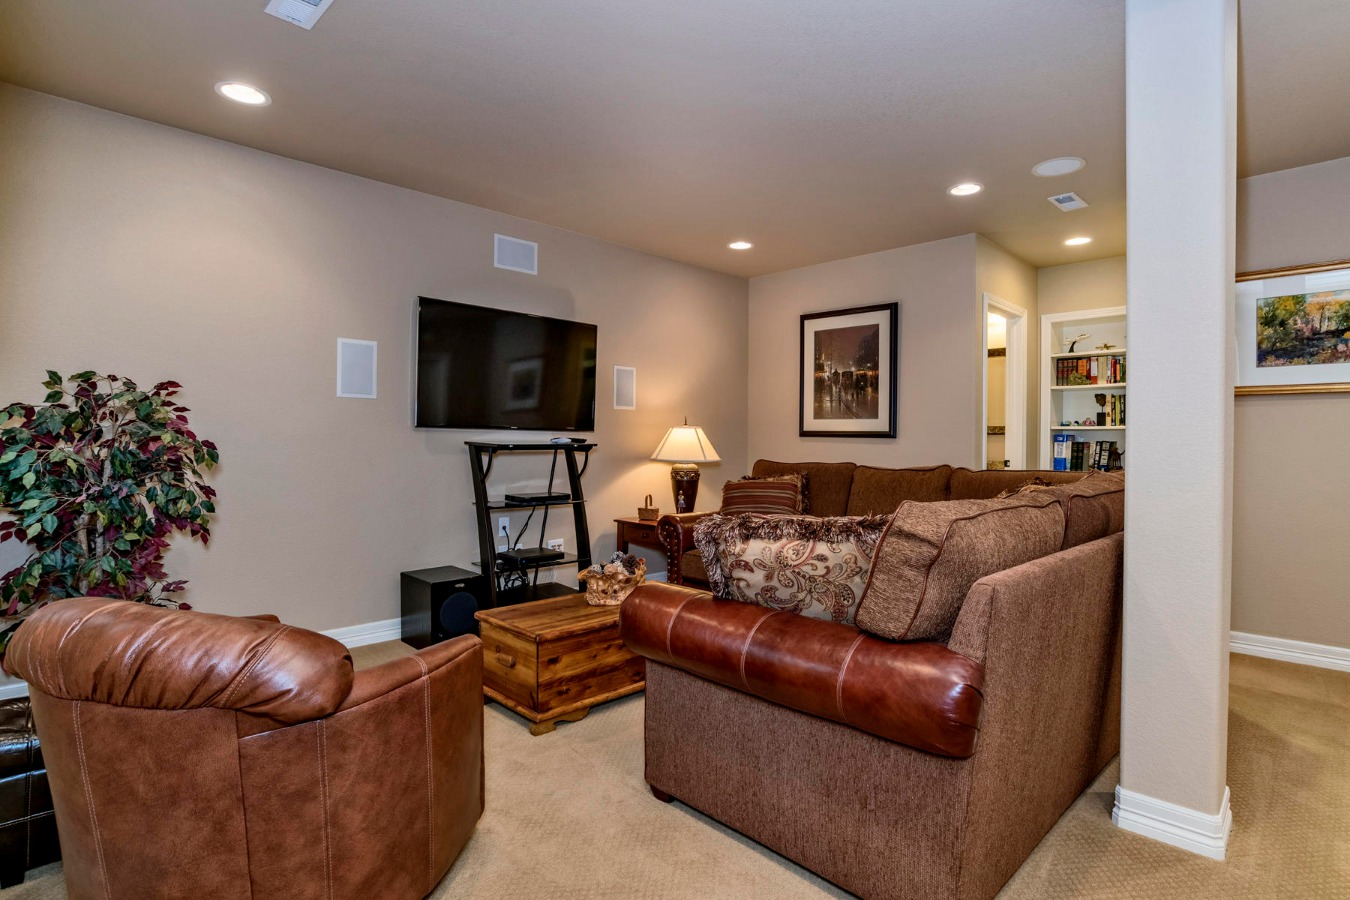 Finished Basement Adds to Living Spaces